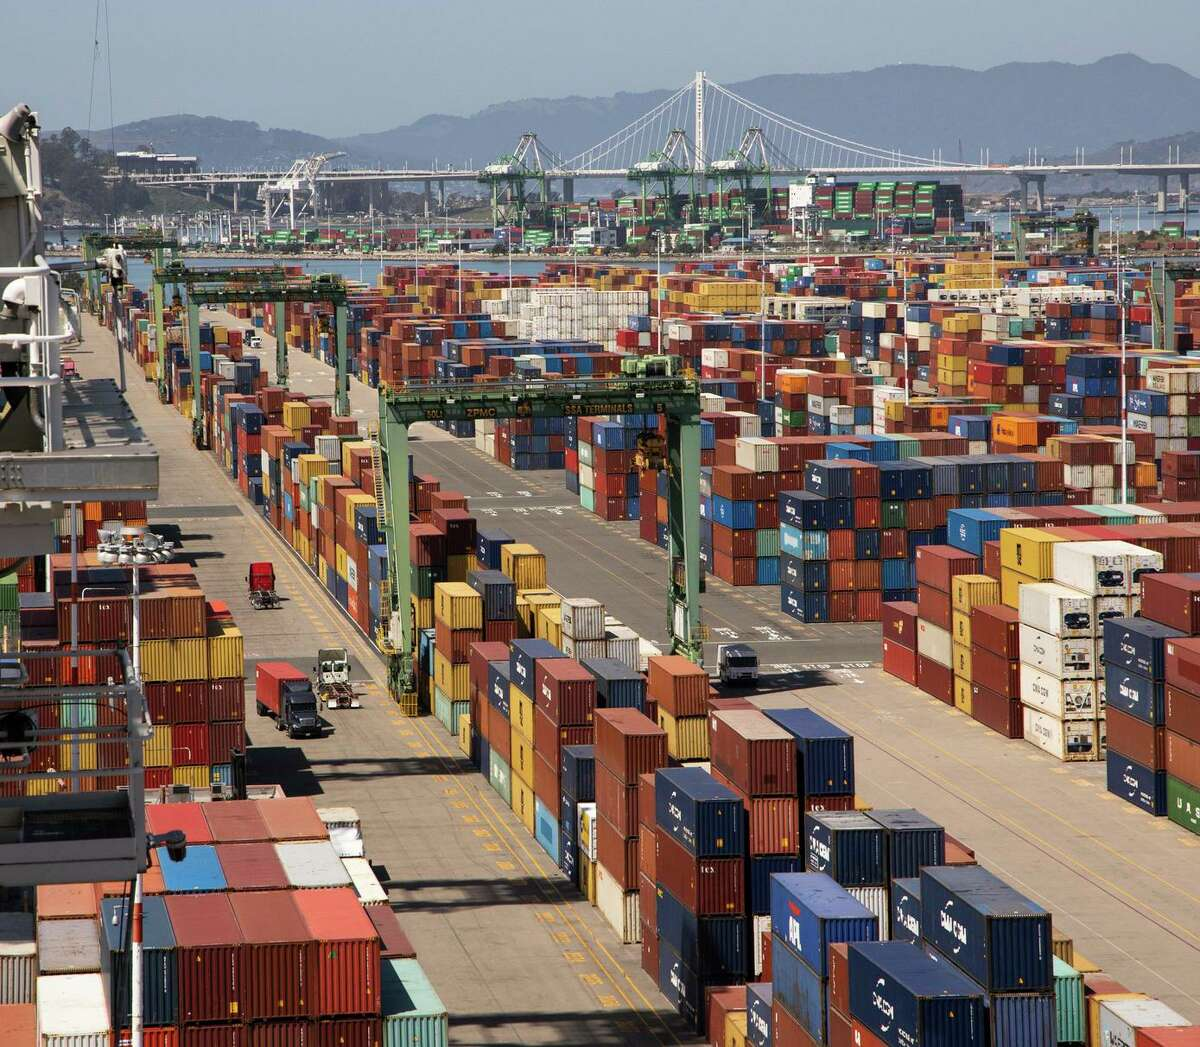 As consumers turned to online shopping during the pandemic, the volume of imports rose and the Port of Oakland saw shipping increase.